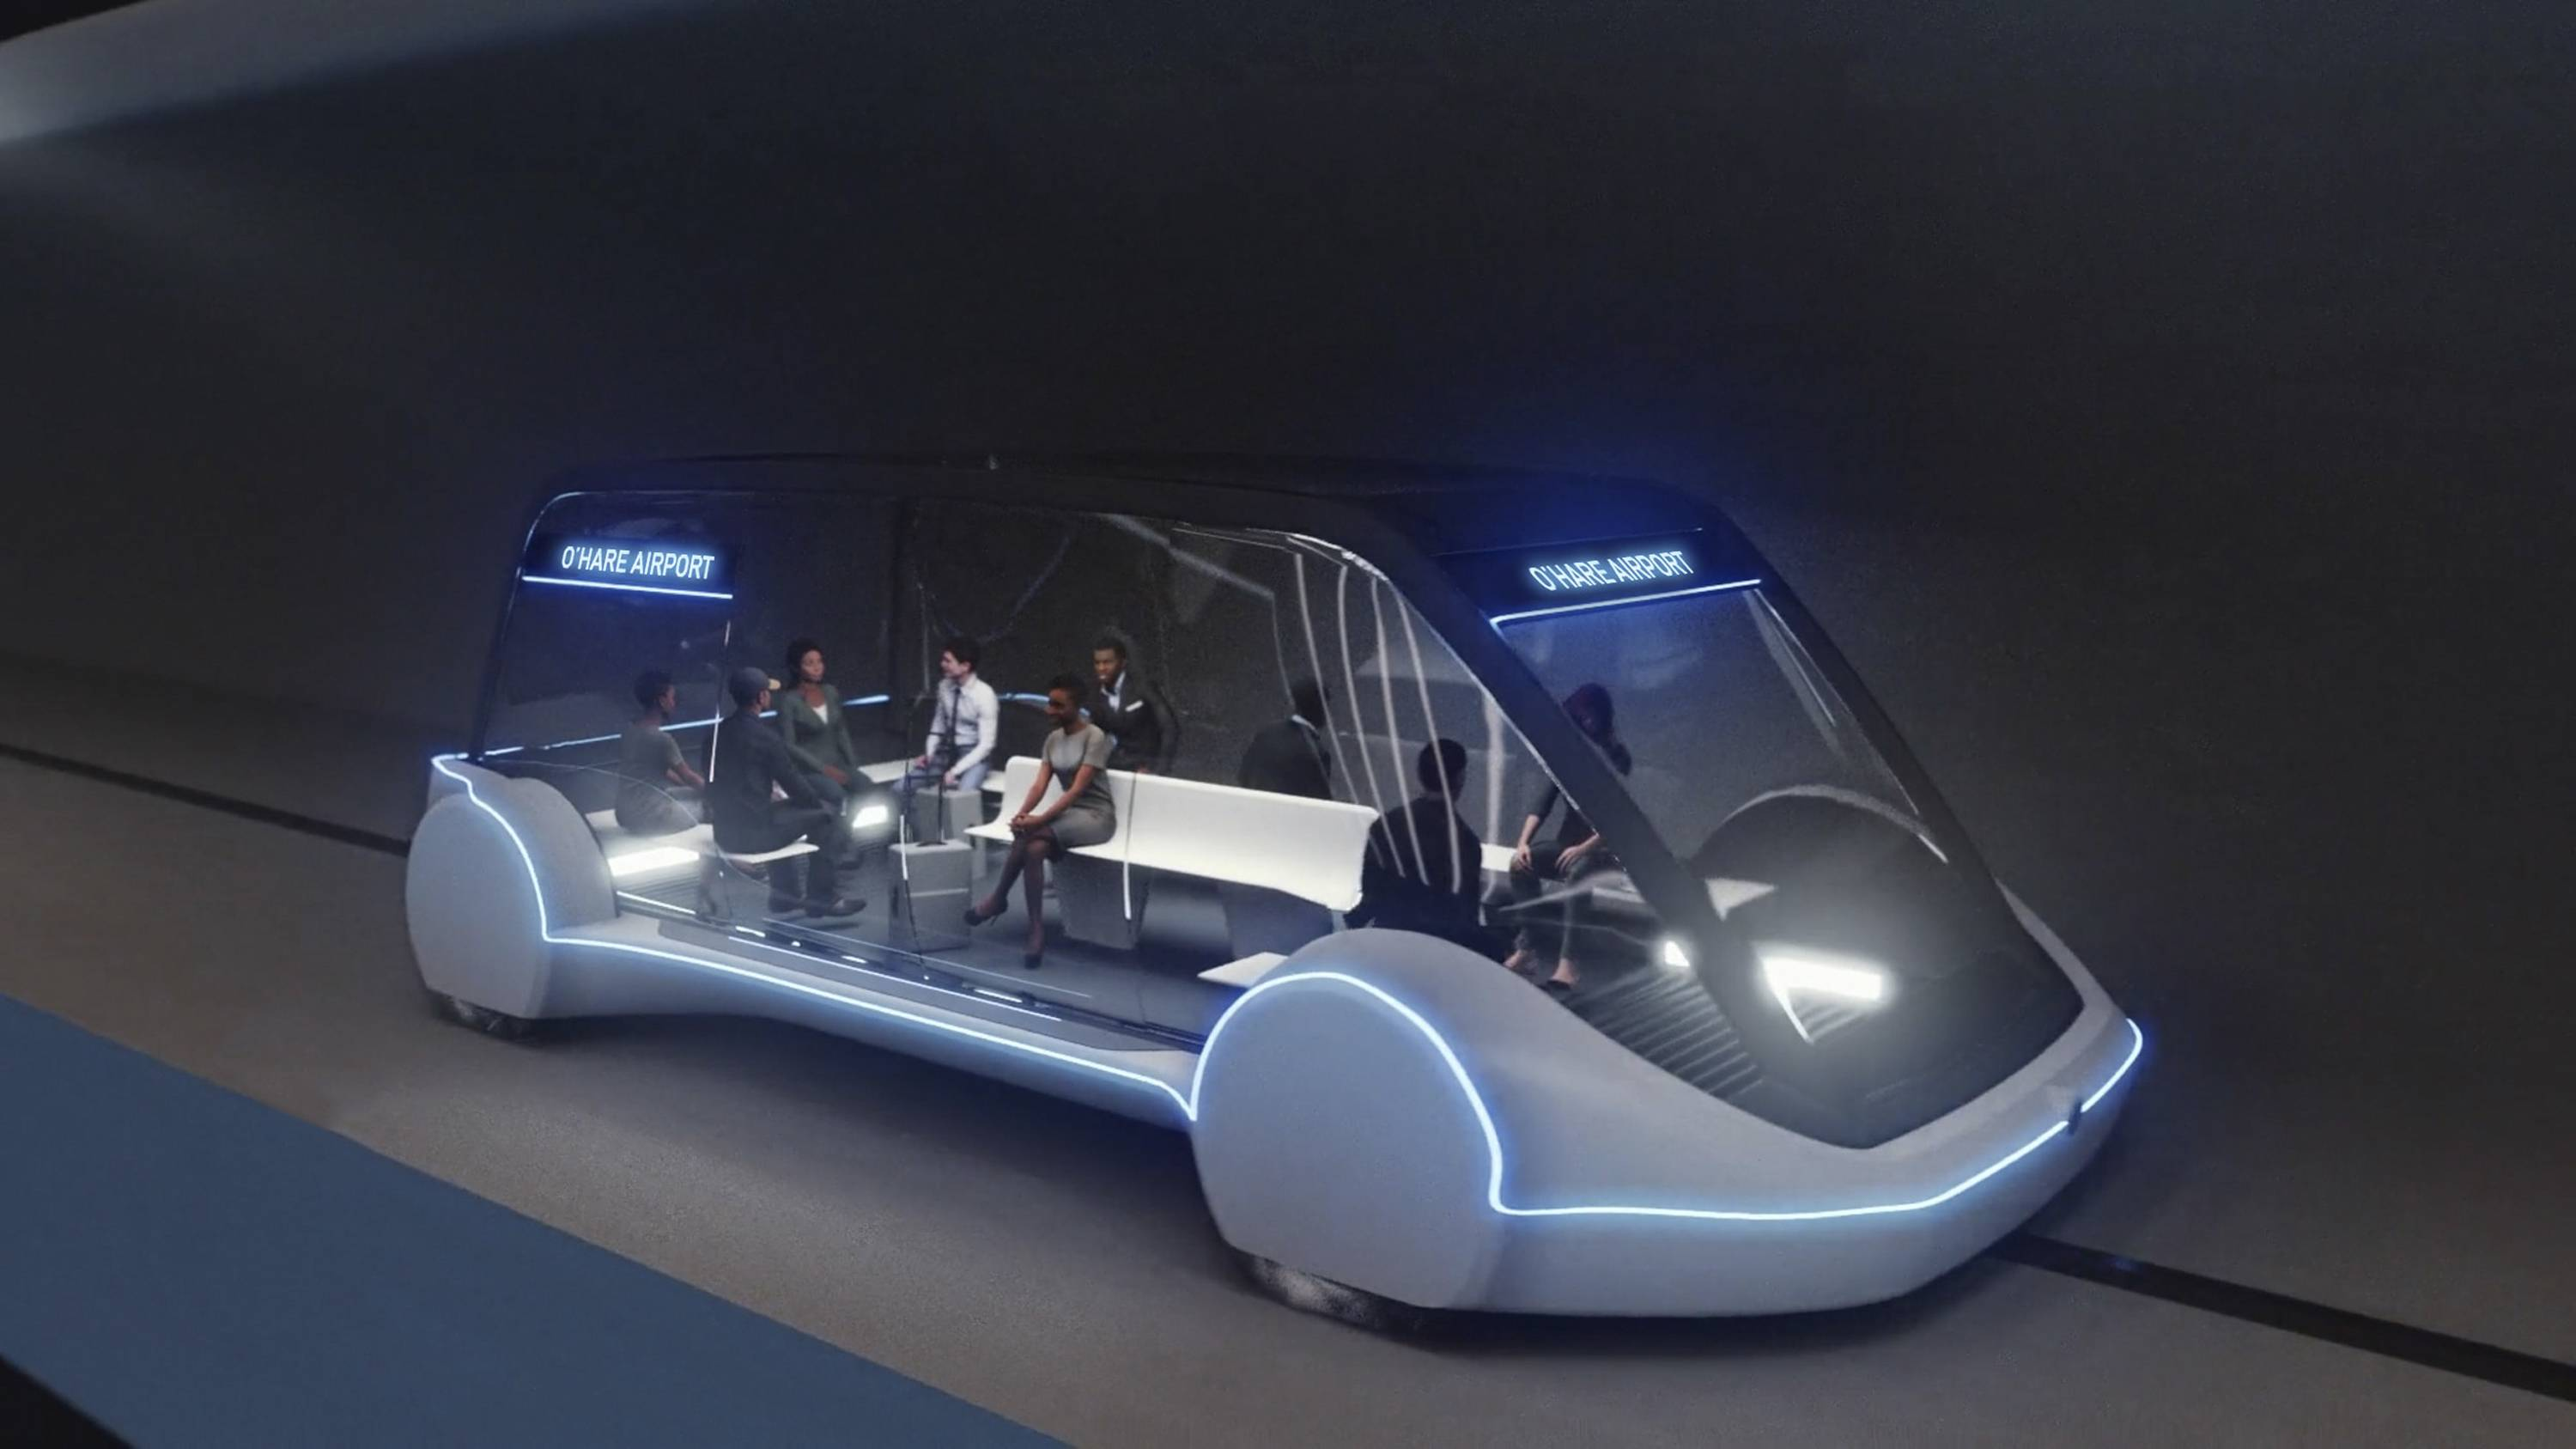 This undated artist's rendering provided by The Boring Company shows an electric public transportation vehicle that is part of a proposed high-speed underground transportation system that will transport passengers from downtown Chicago to O'Hare International Airport.